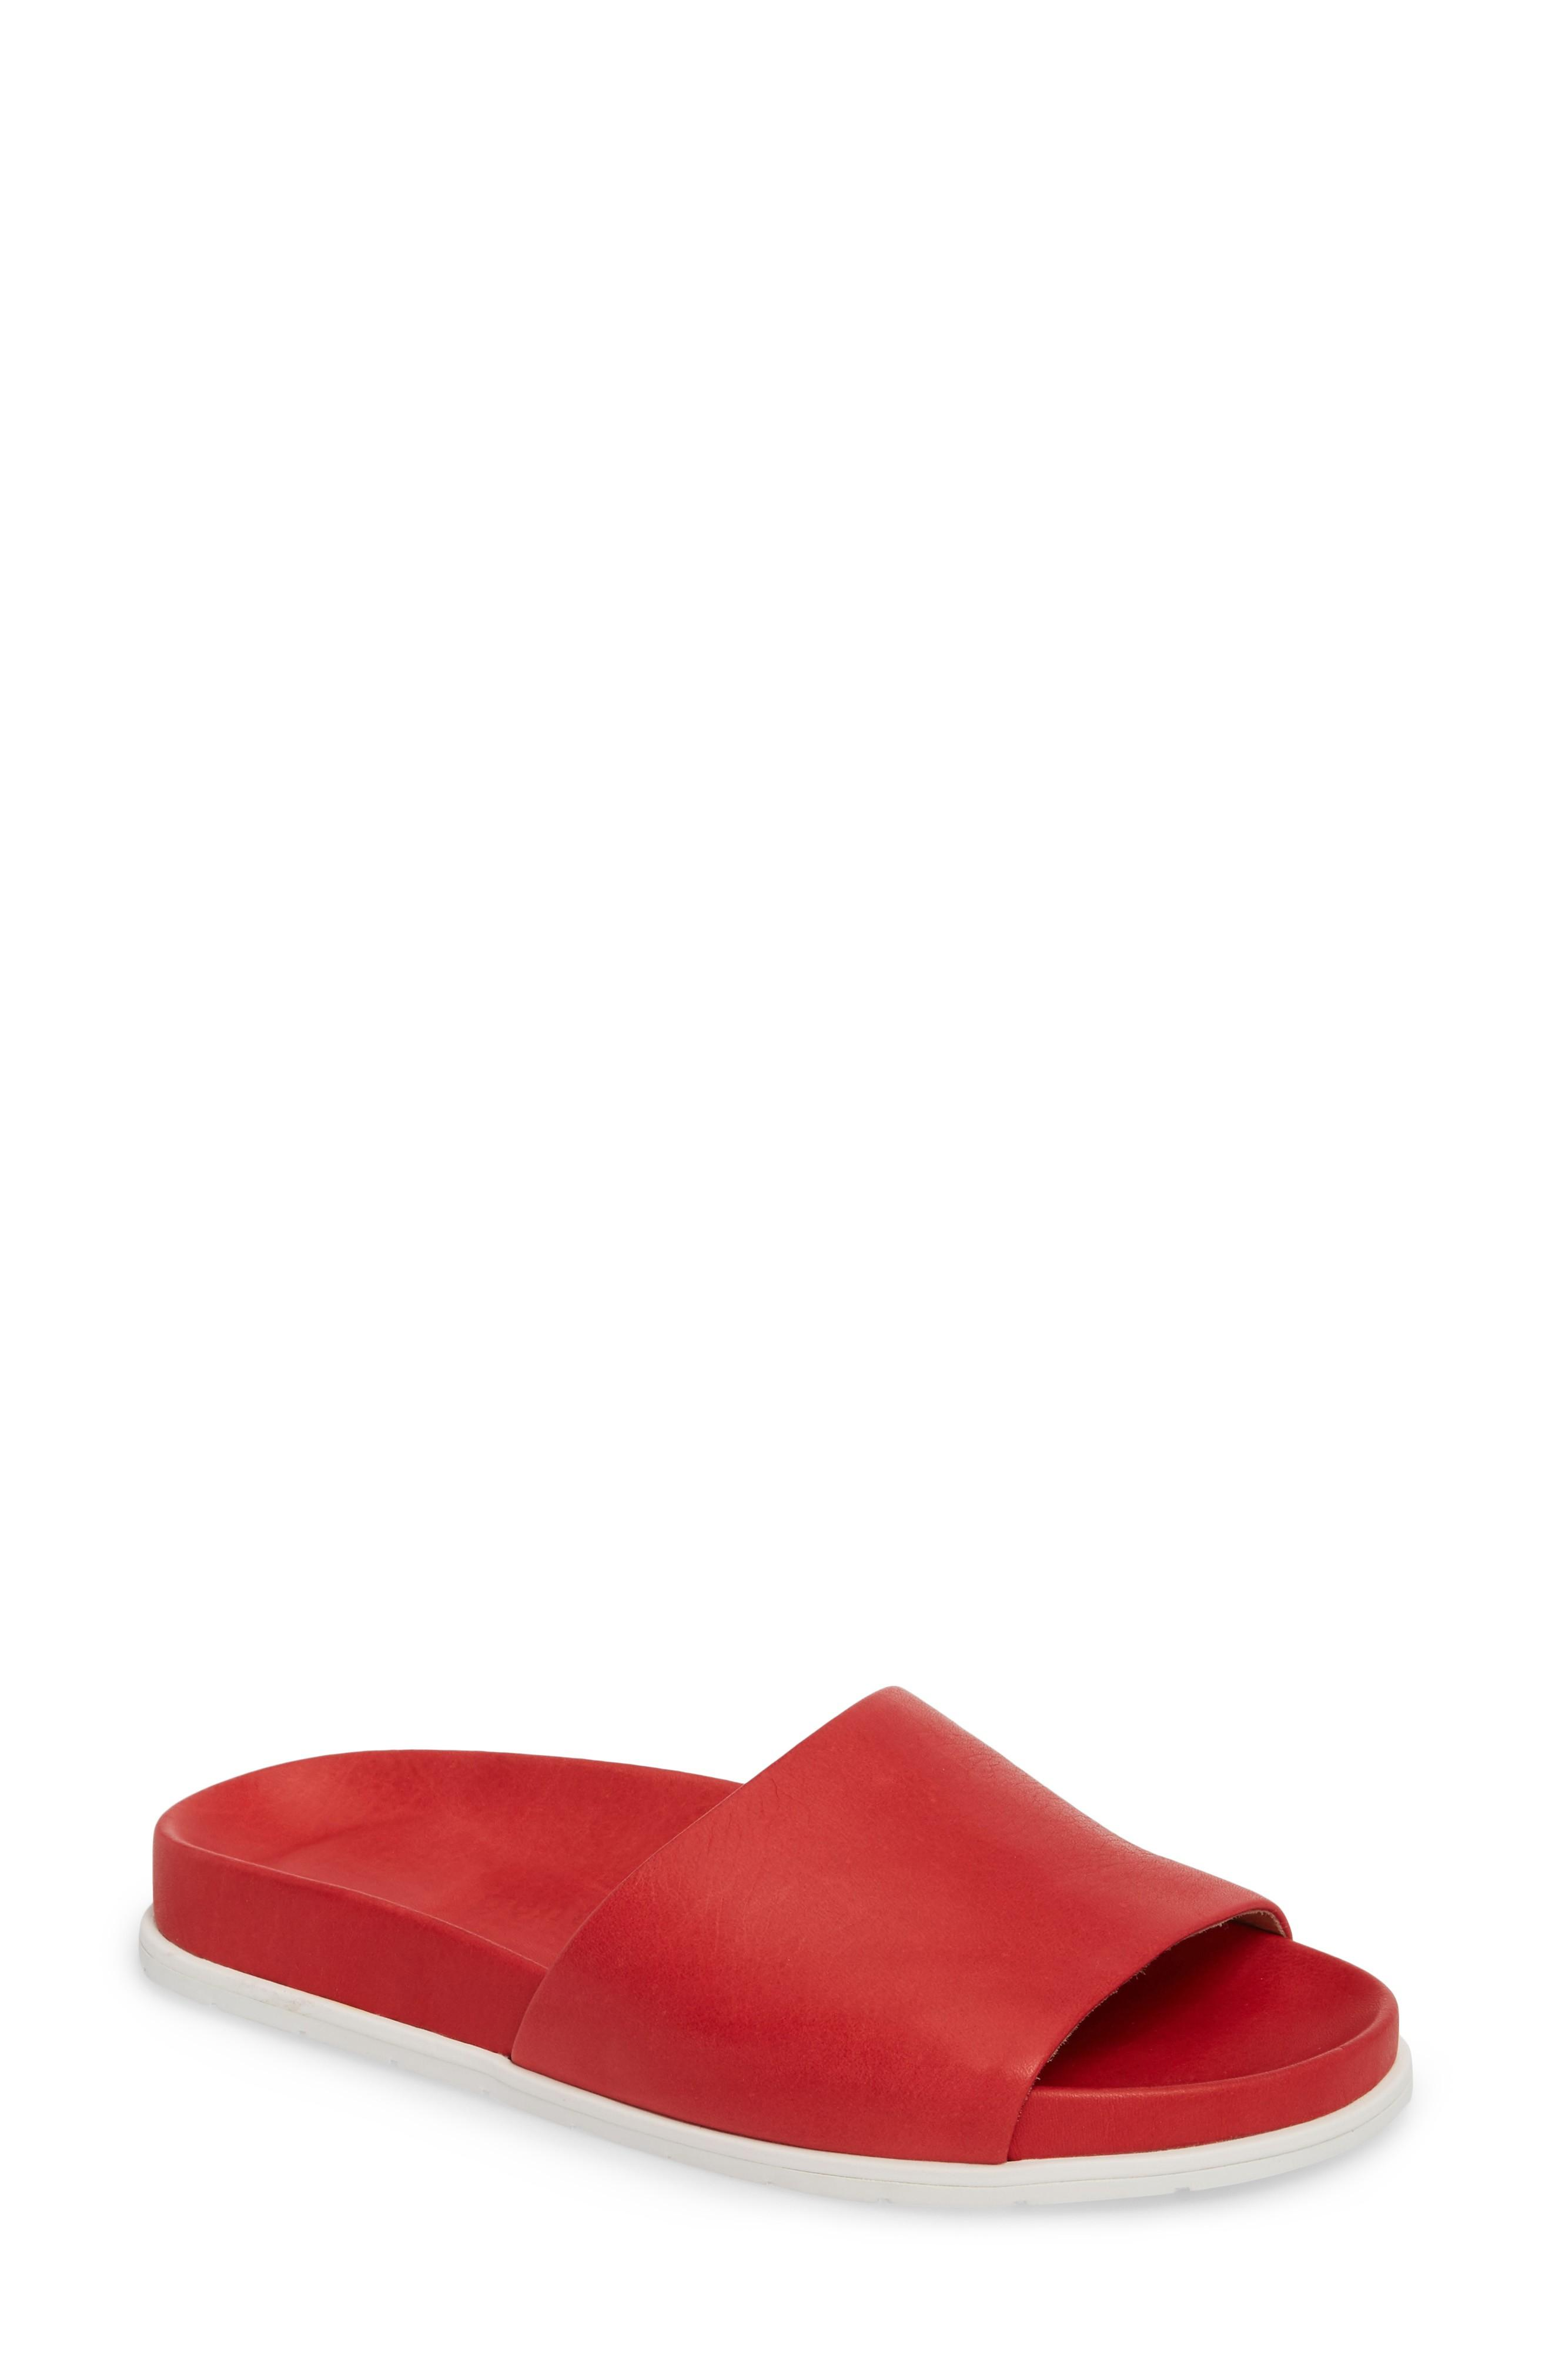 Gentle Souls By Kenneth Cole Iona Slide Sandal In Lipstick Leather